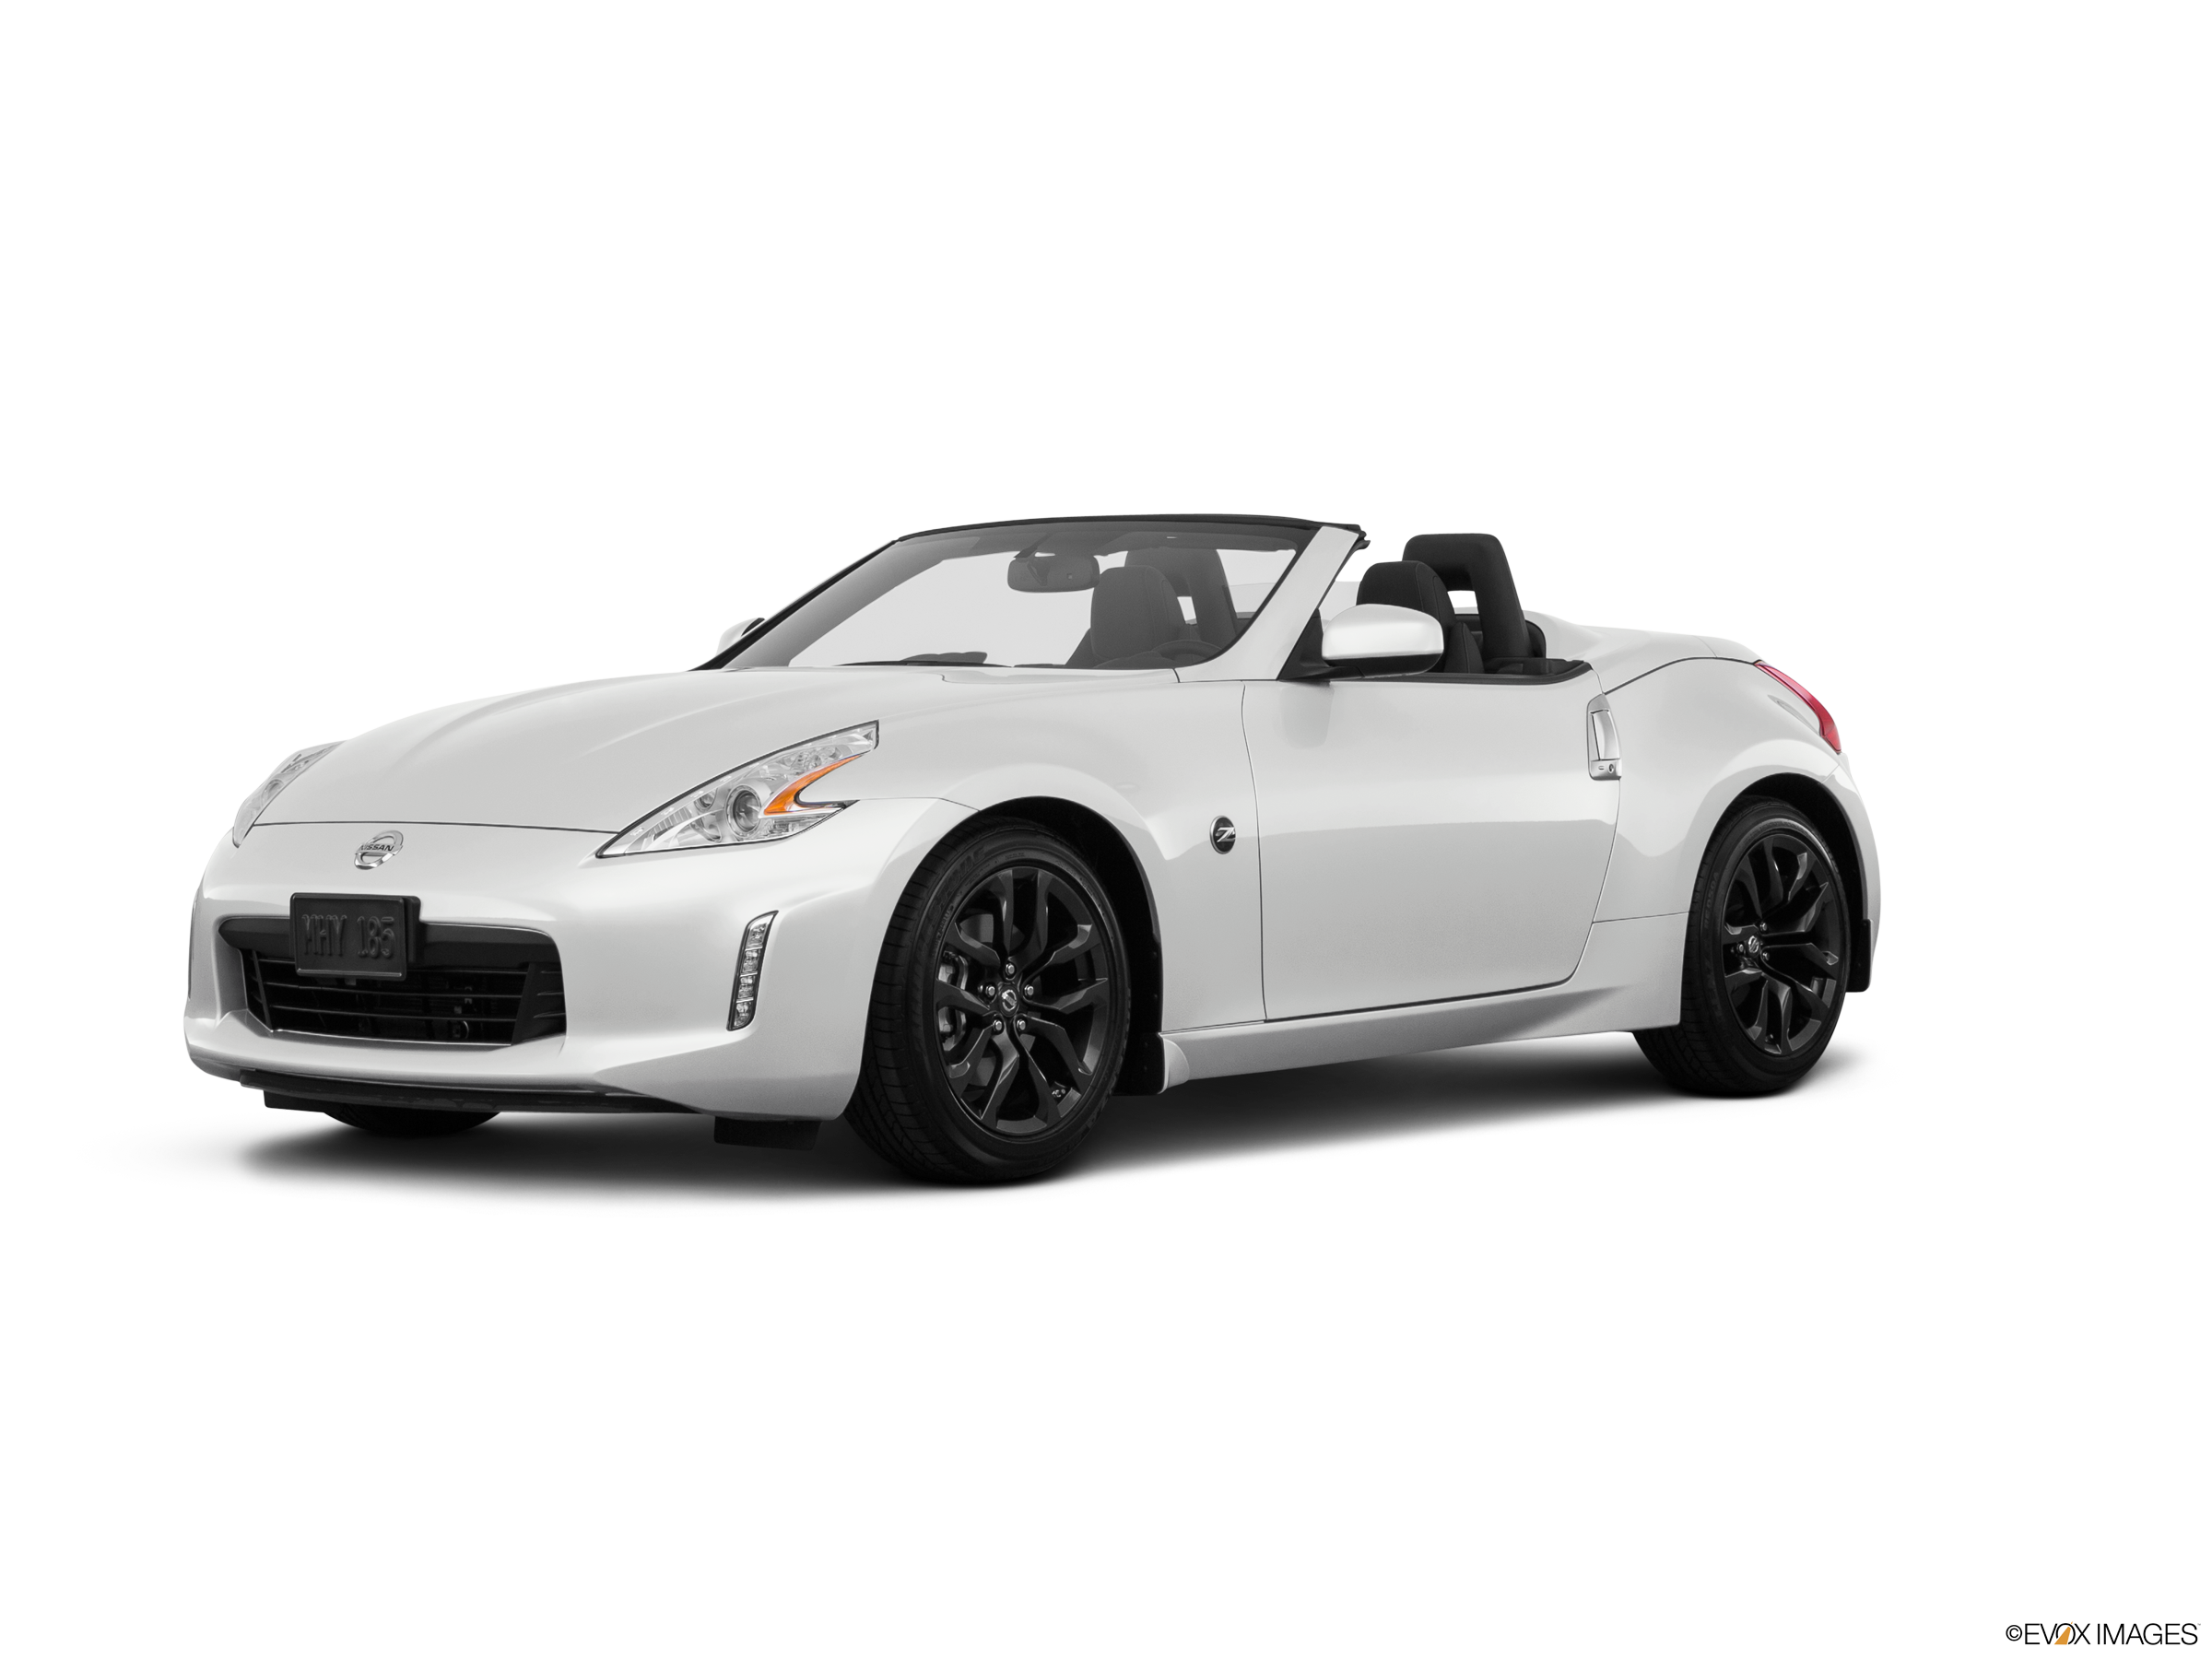 Most Popular Convertibles of 2019 - 2019 Nissan 370Z